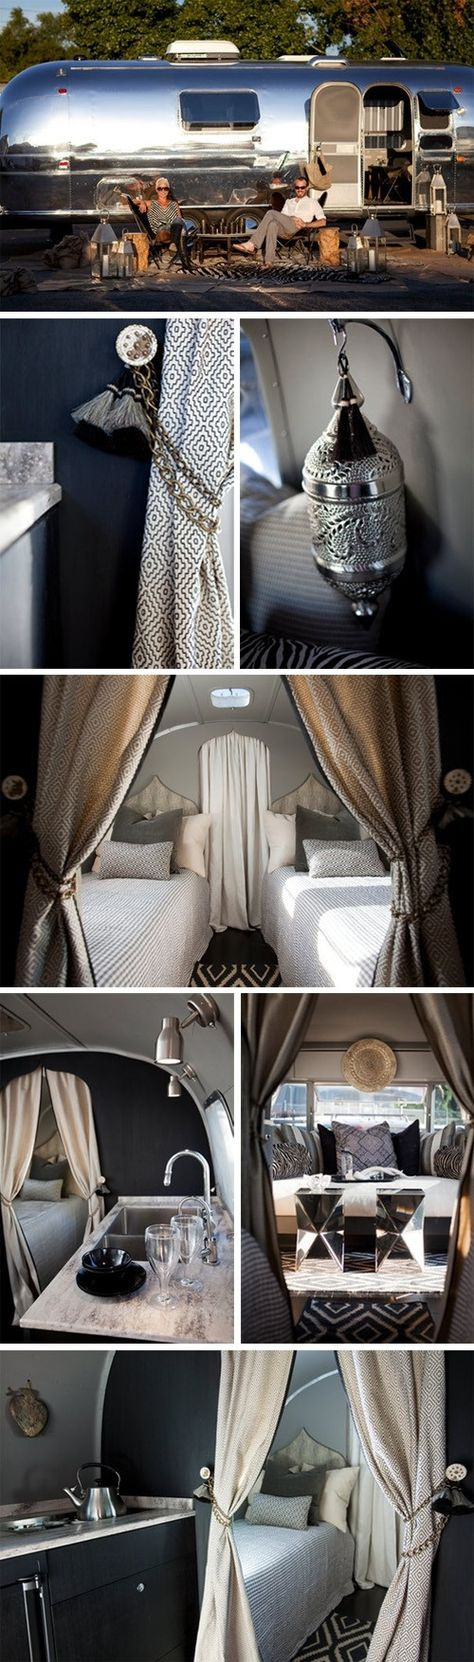 """owner describes her airstream's interior as """"luxe nomadic."""" sounds about right. via http://www.nytimes.com/slideshow/2011/08/31/garden/20110901-qna.html"""